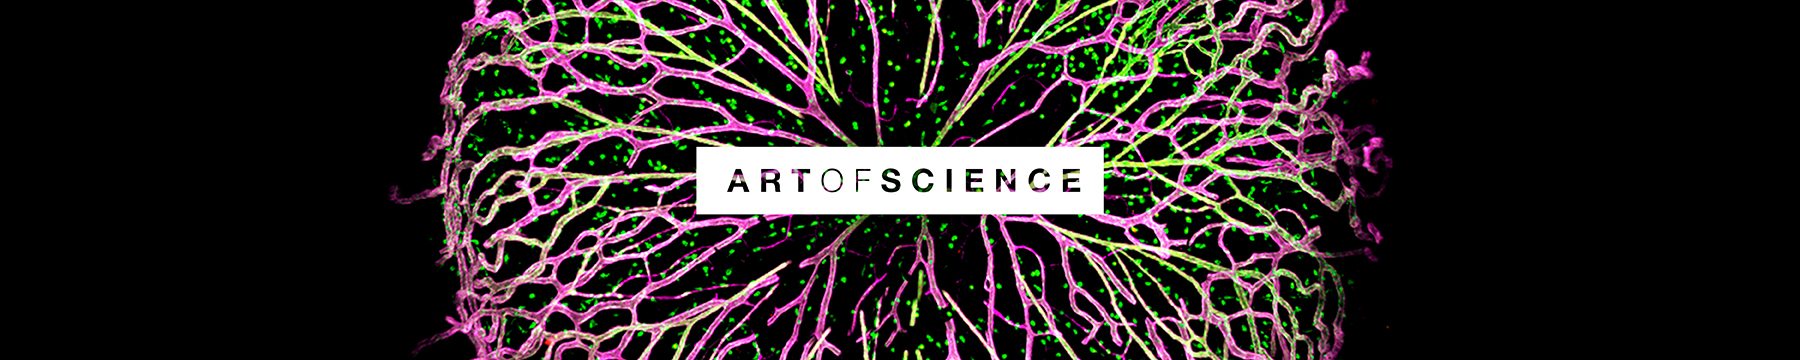 Art of Science 2017 event promotion